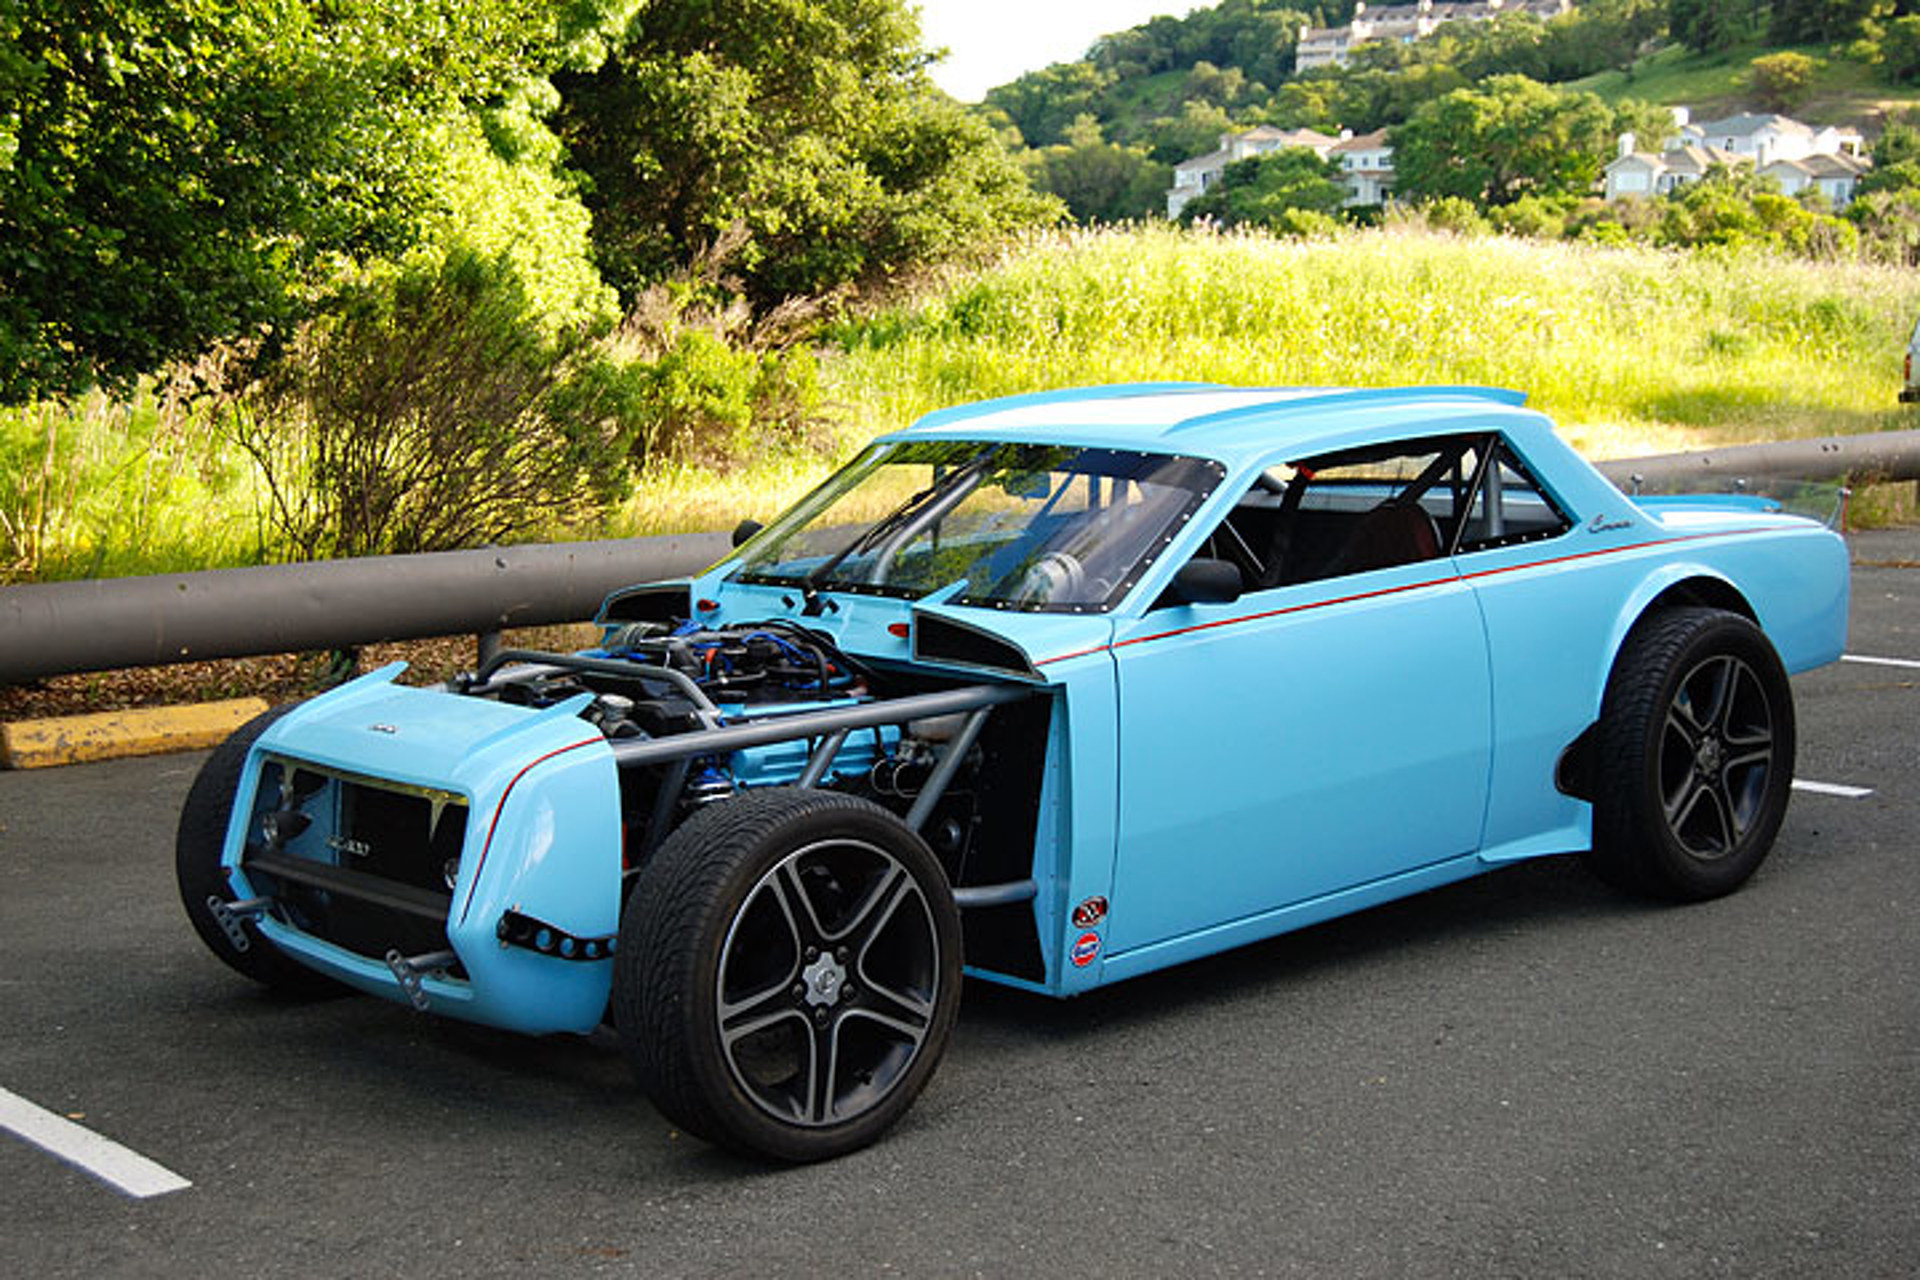 This is Officially the World's Wildest Lexus Hot Rod